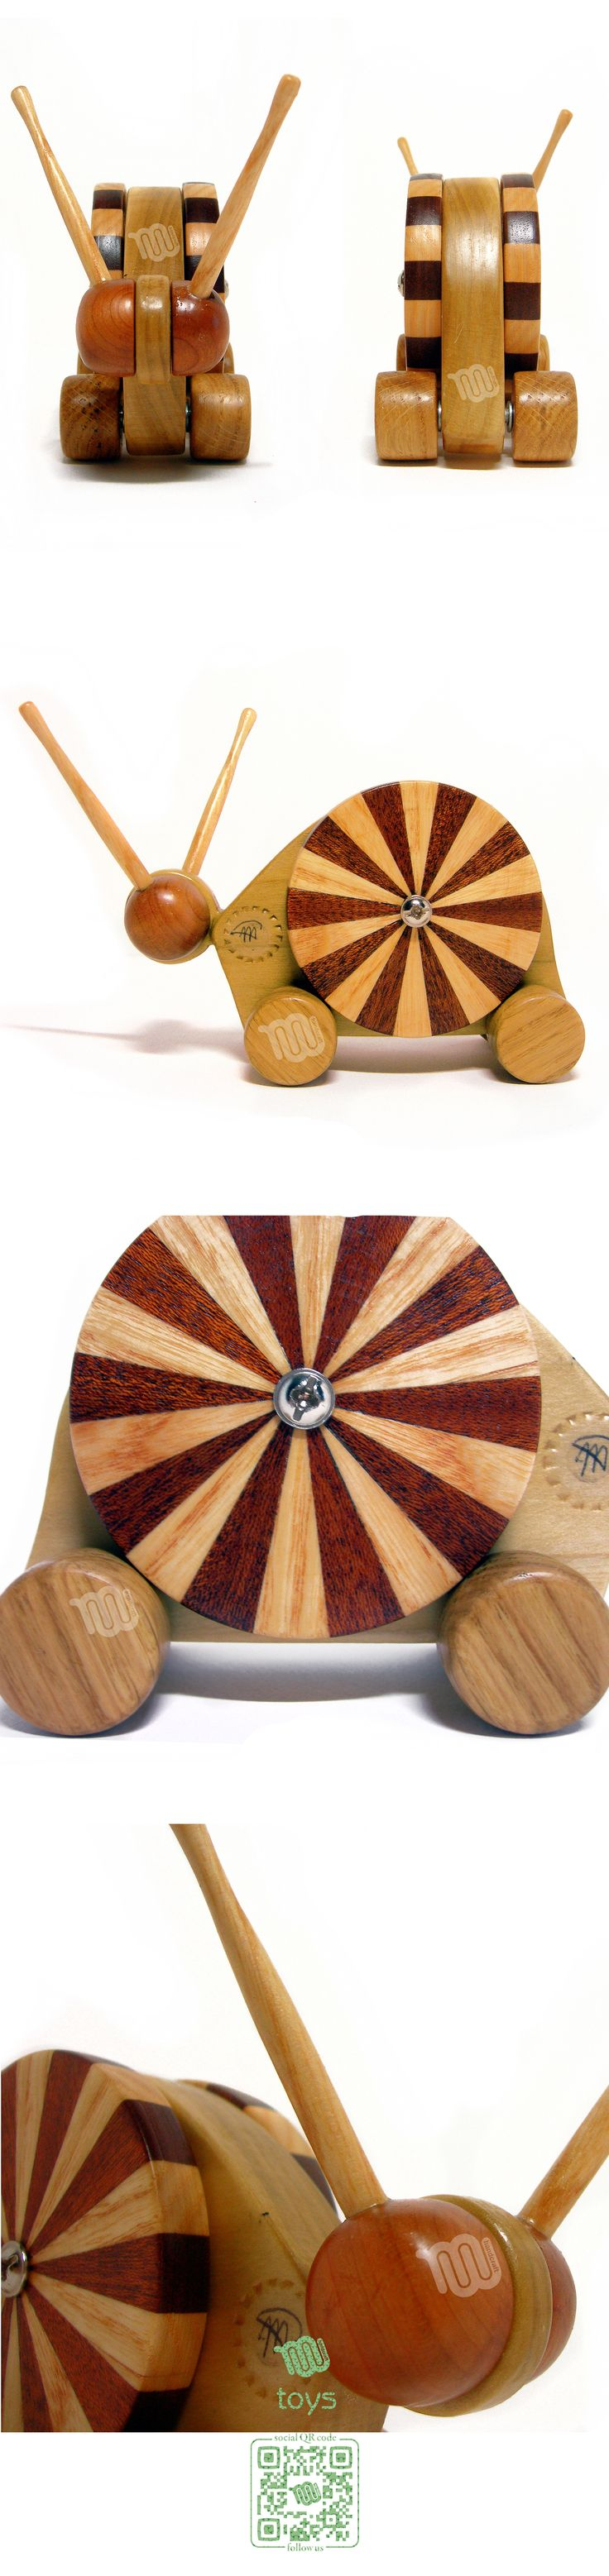 Snail – wood toy